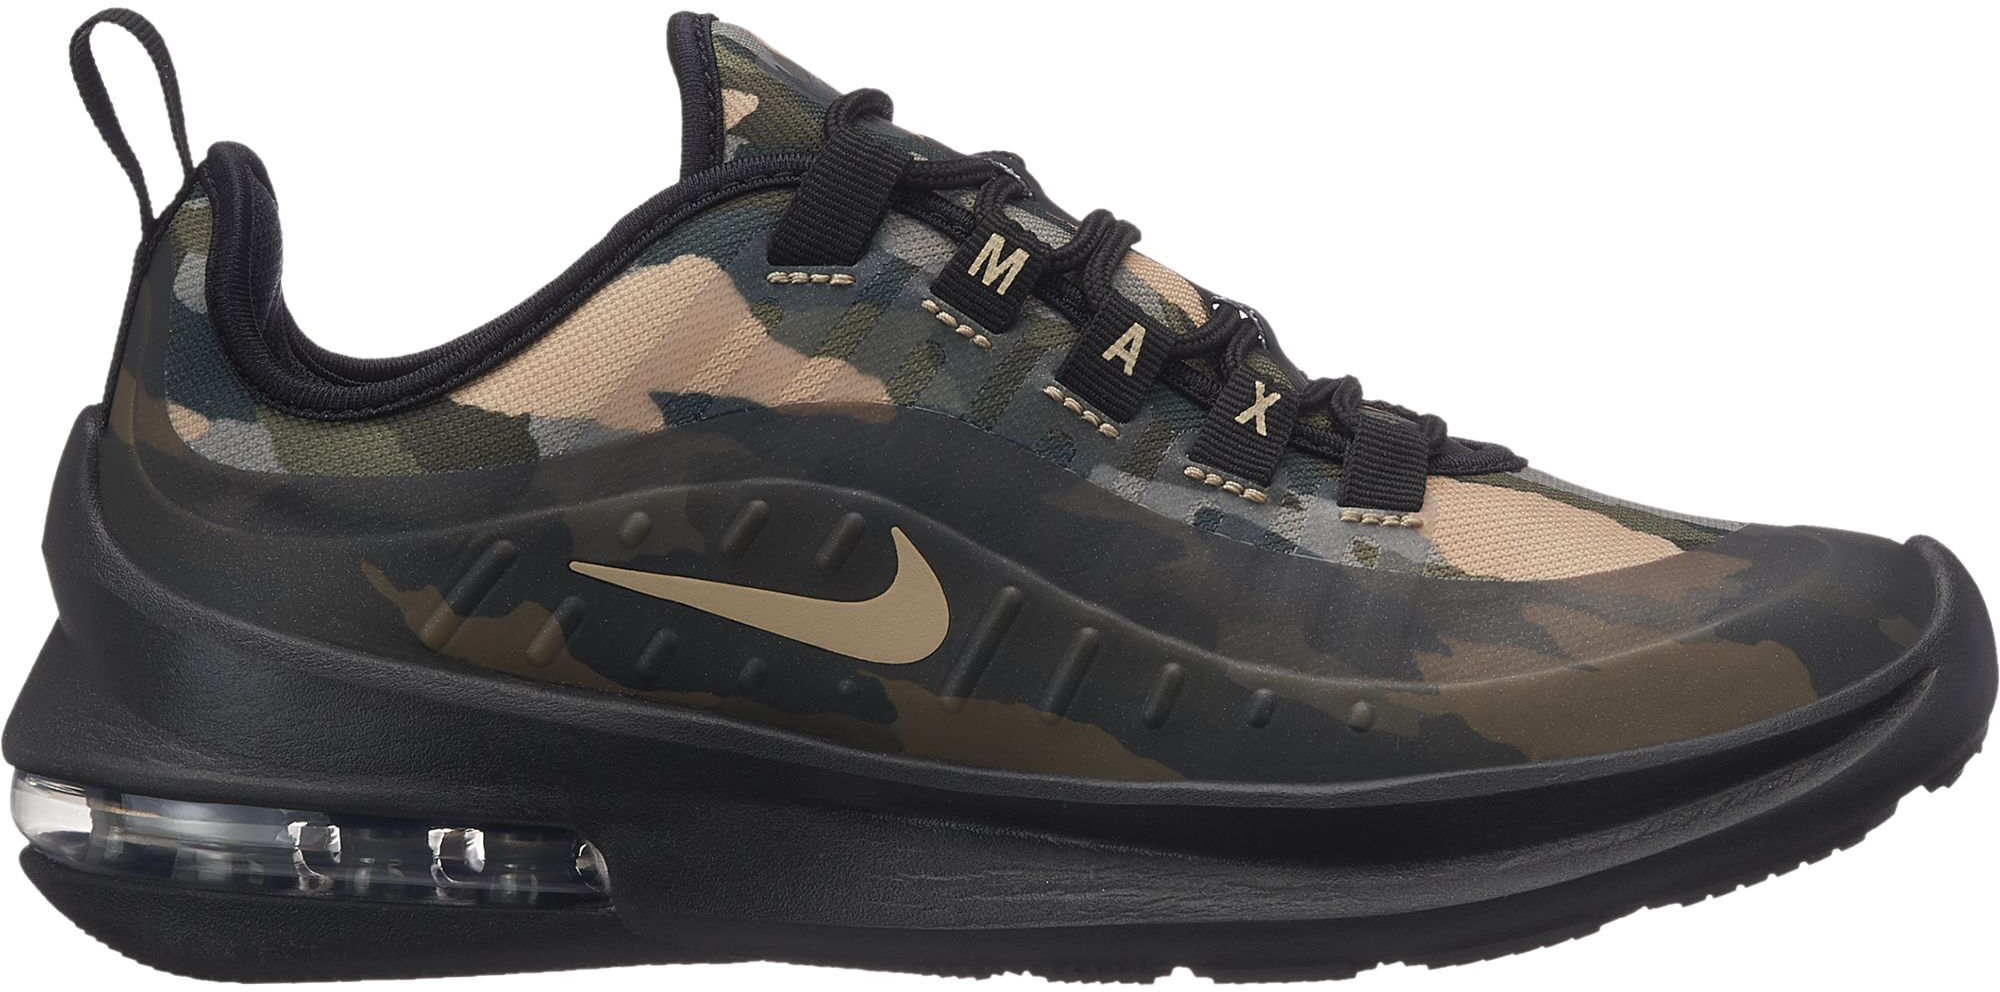 Outlet de sneakers Nike Air Max Axis Intersport baratas